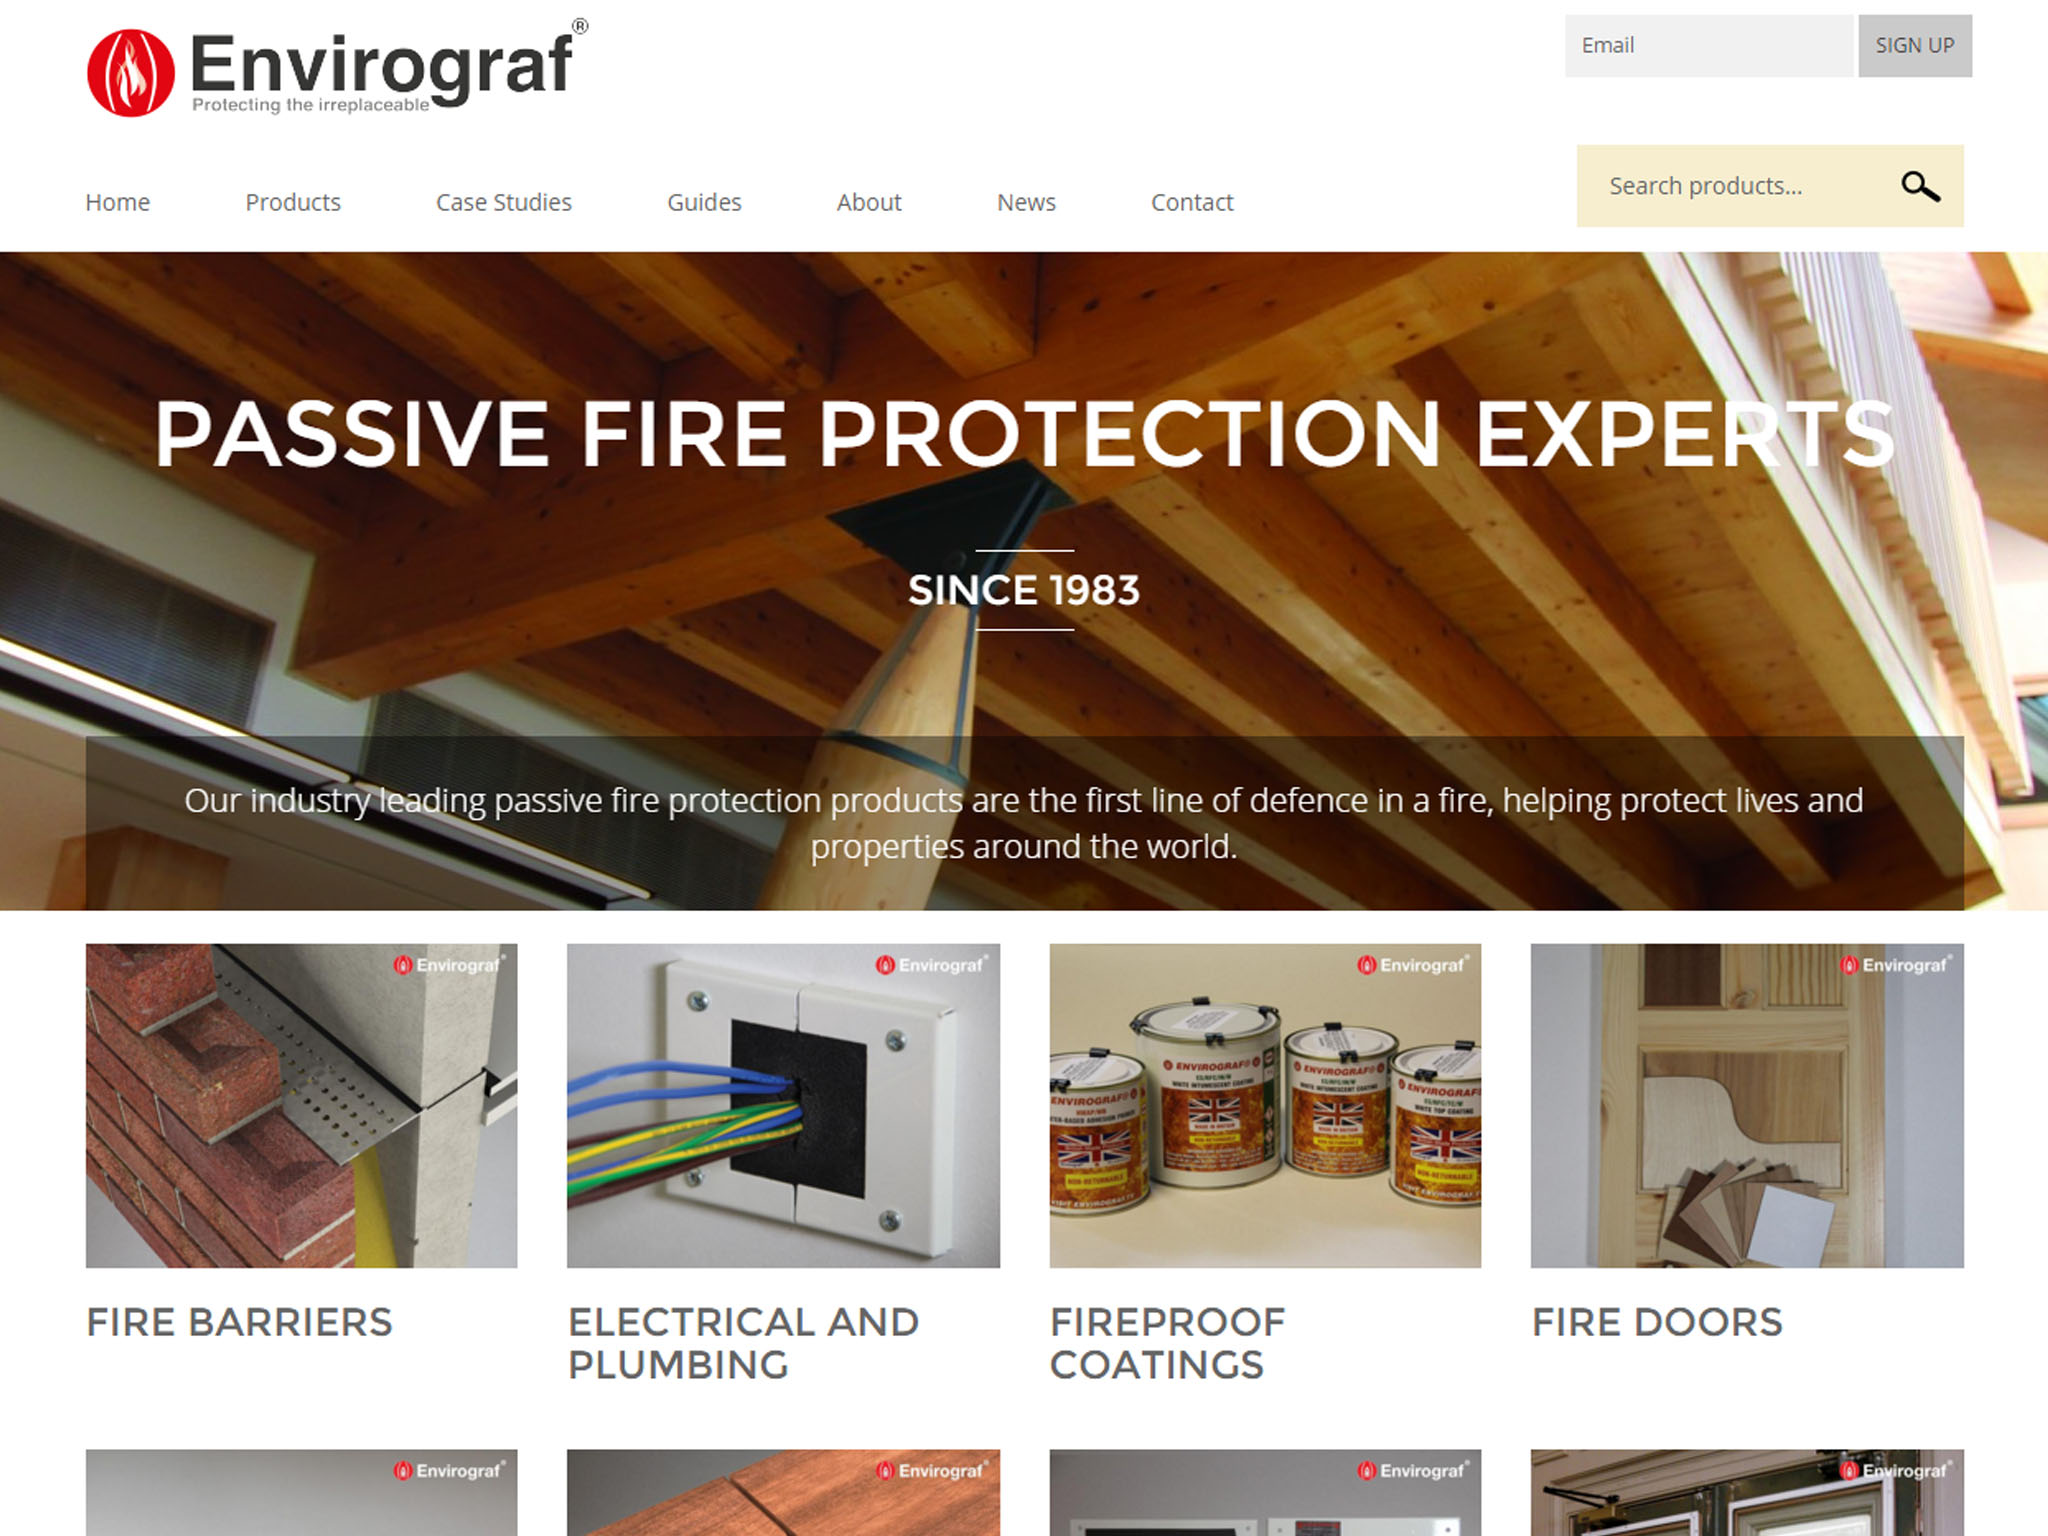 The home page of the Envirograf website.